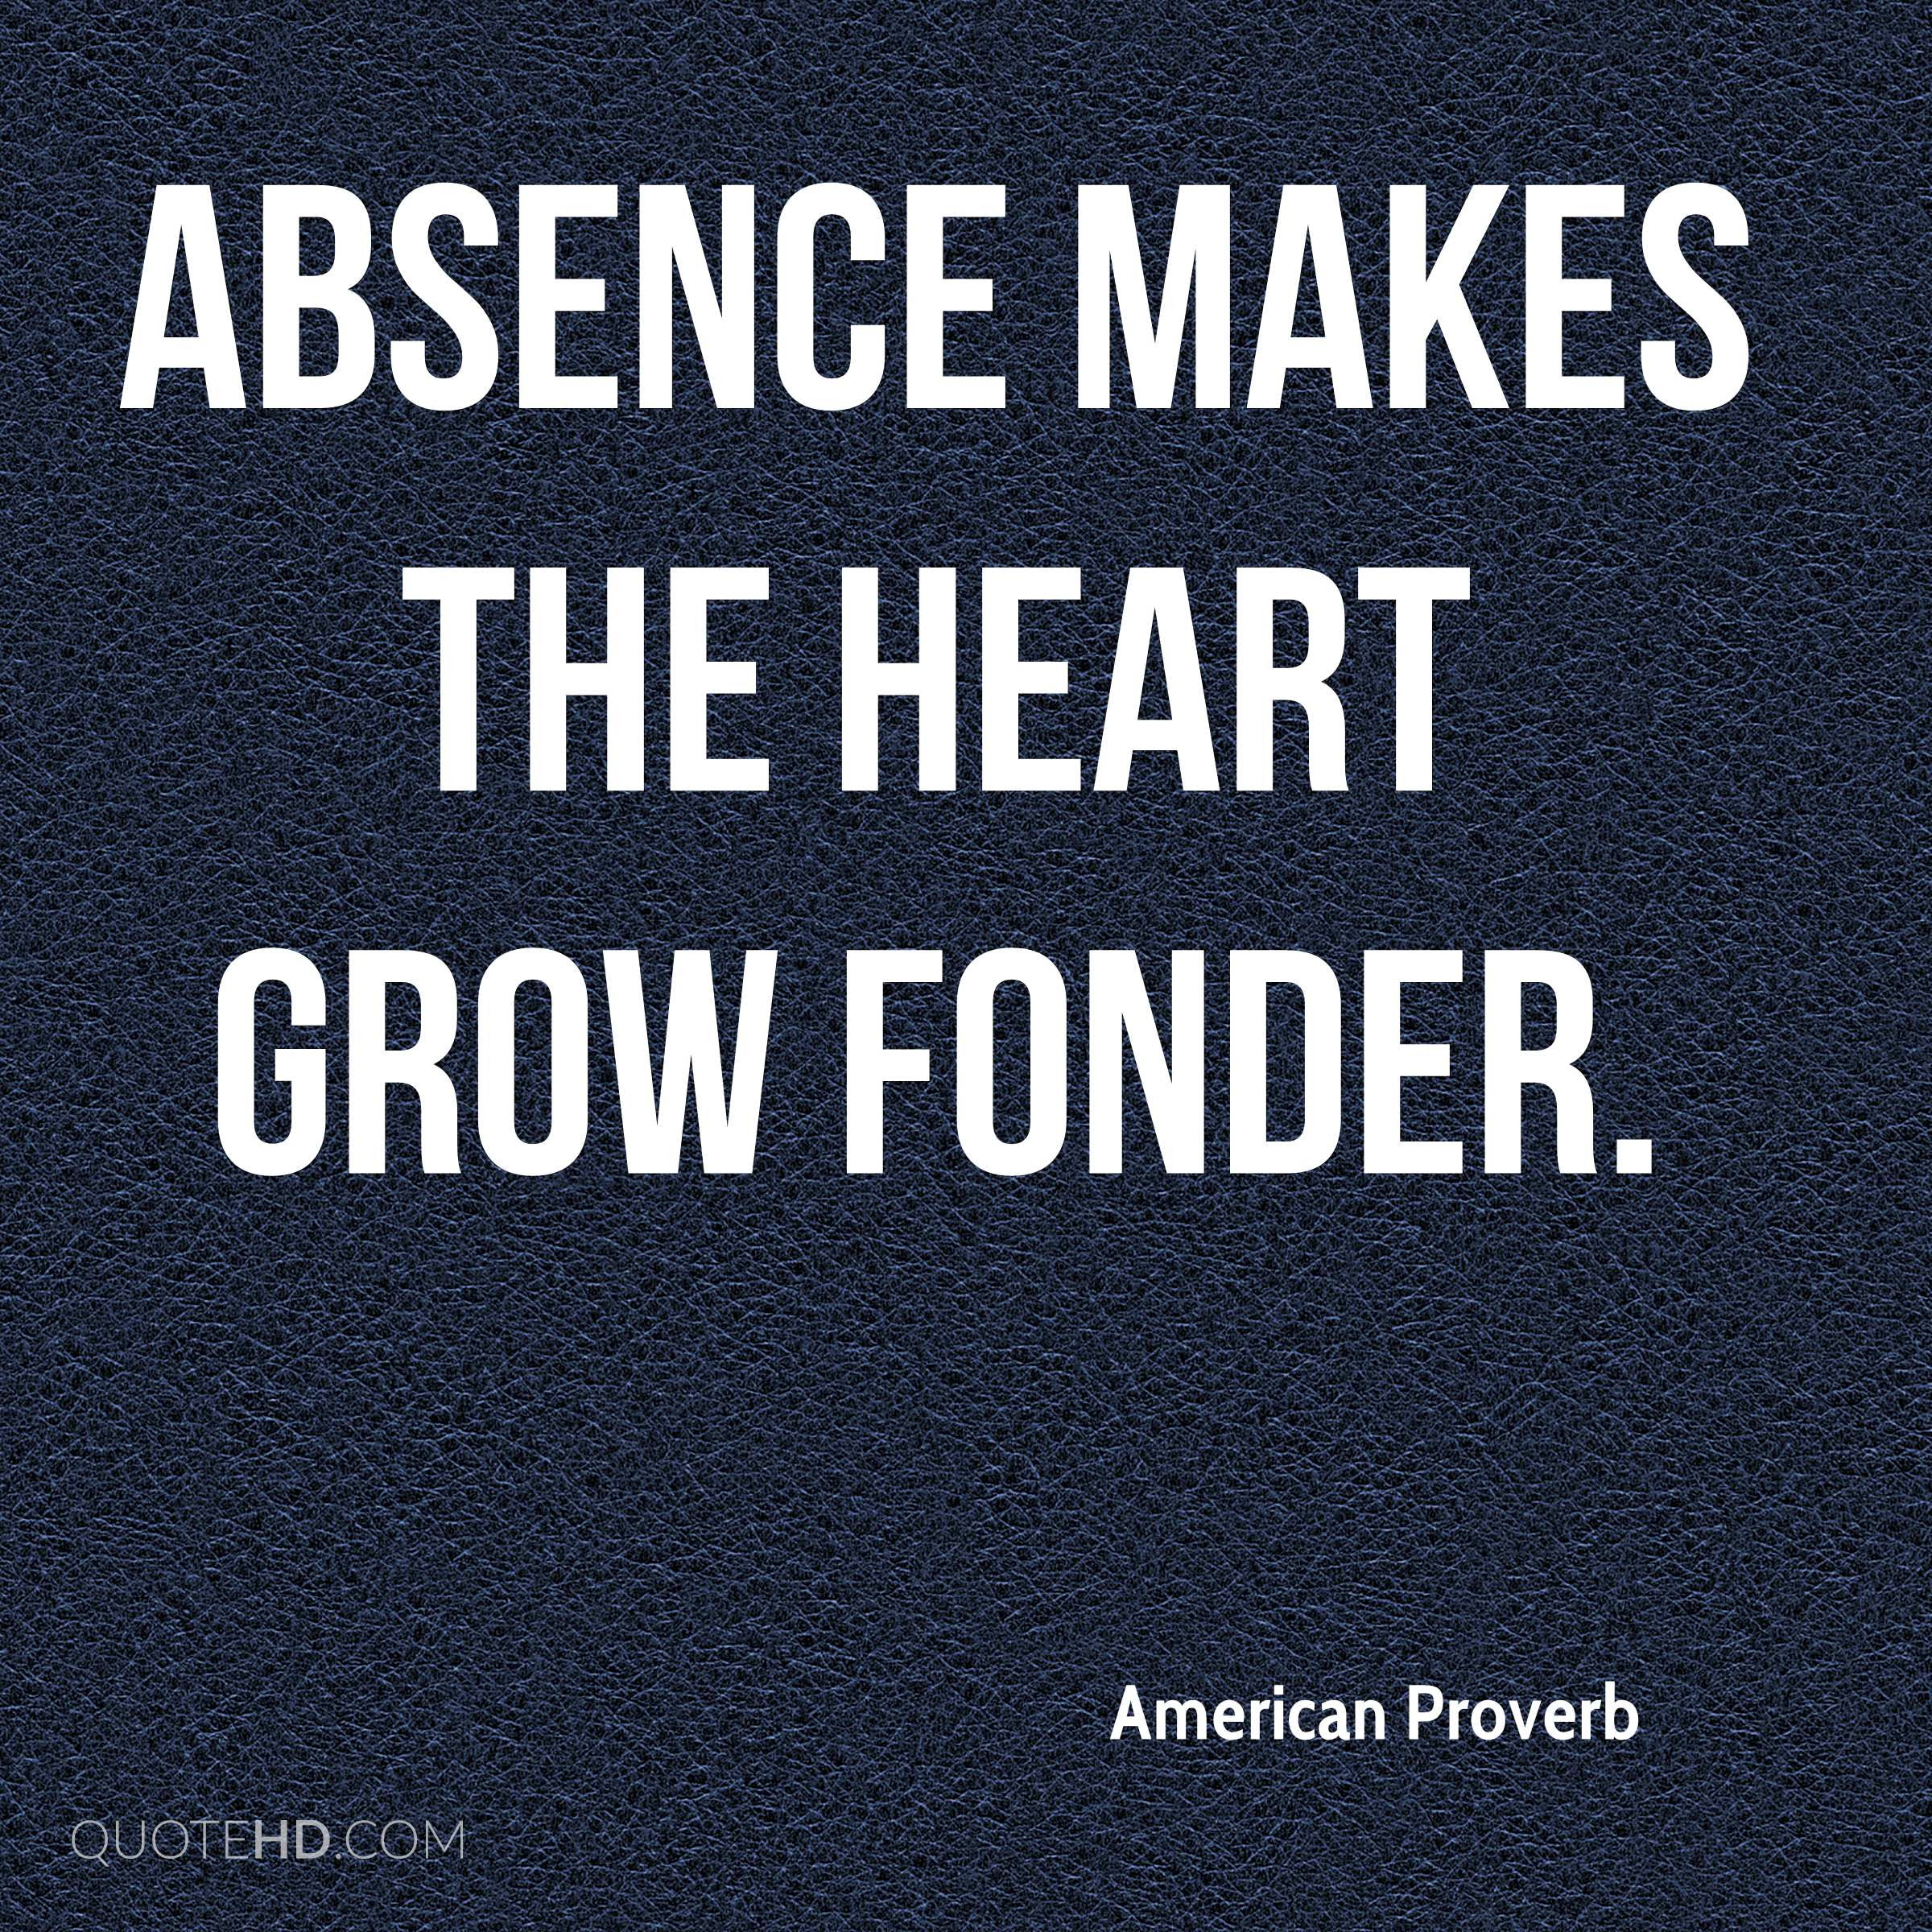 American Proverb Quotes Quotehd